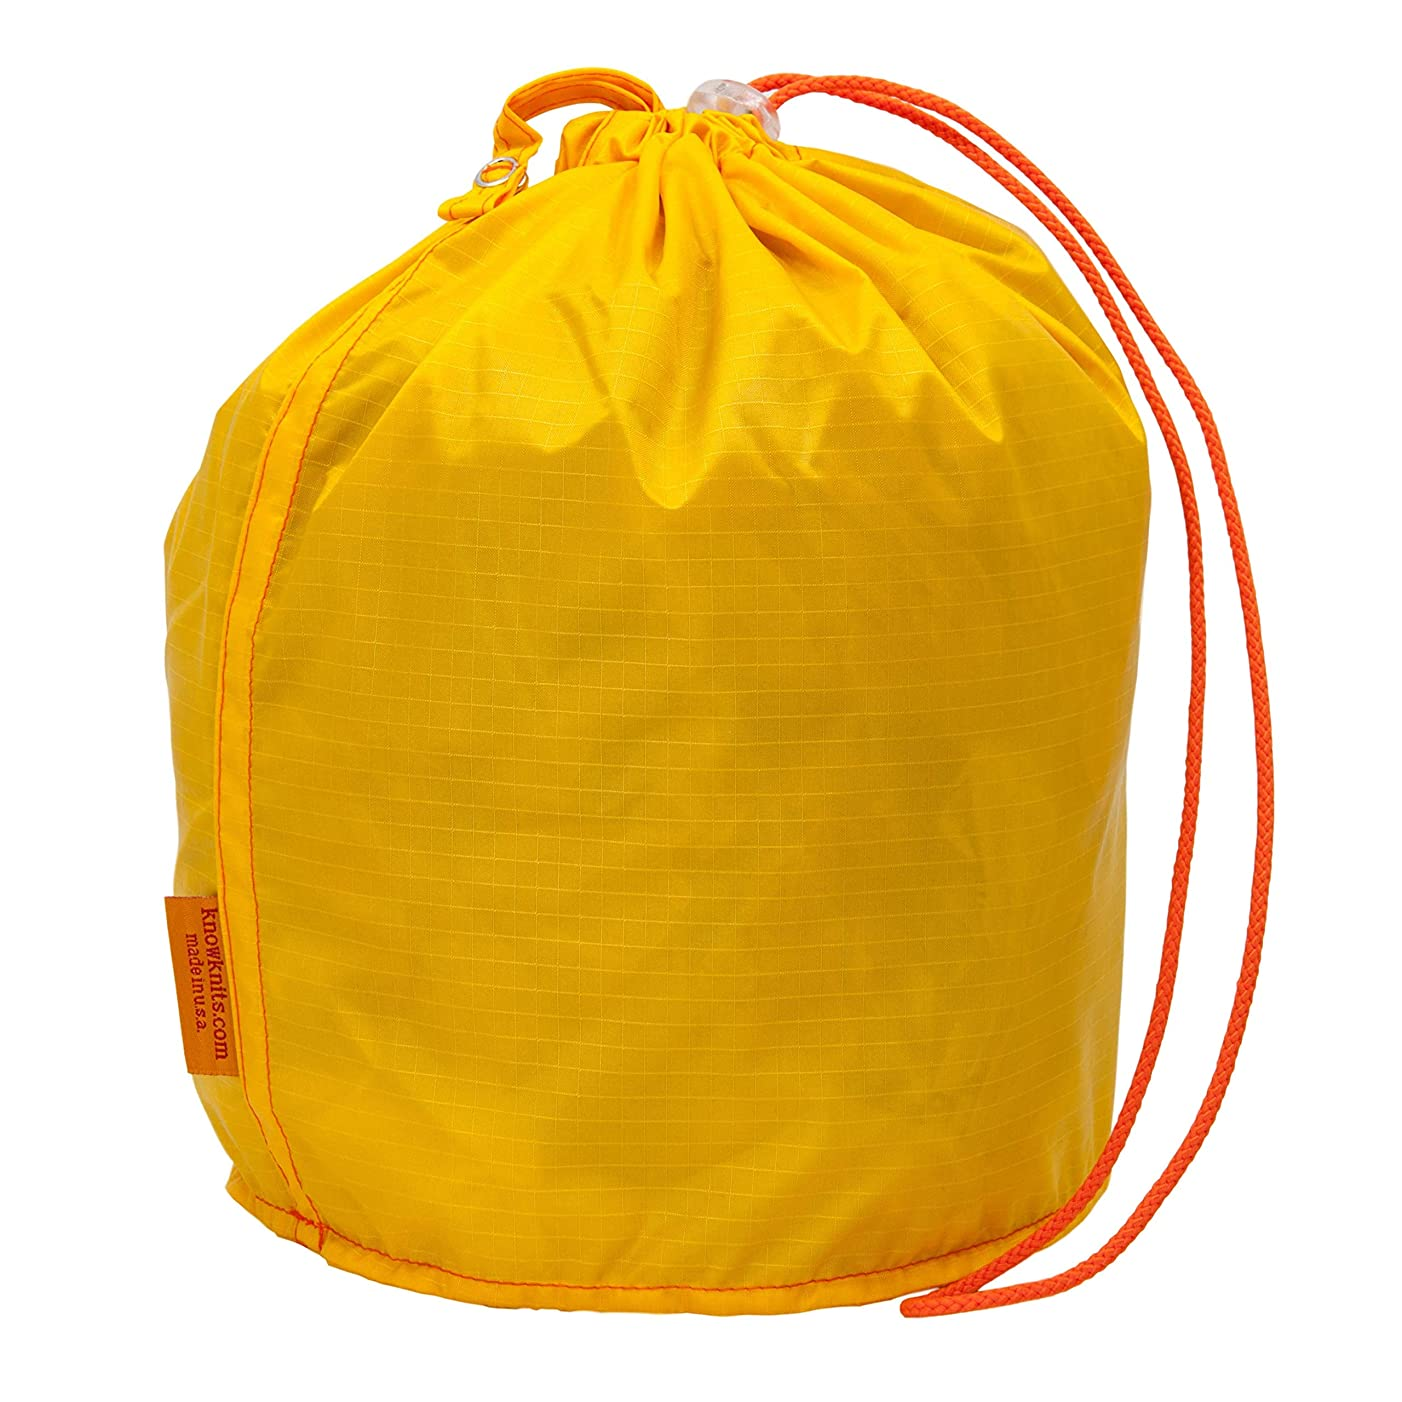 GoKnit Dandelion Yellow Pouch Knitting Project Bag with Loop & Drawstring (Medium)